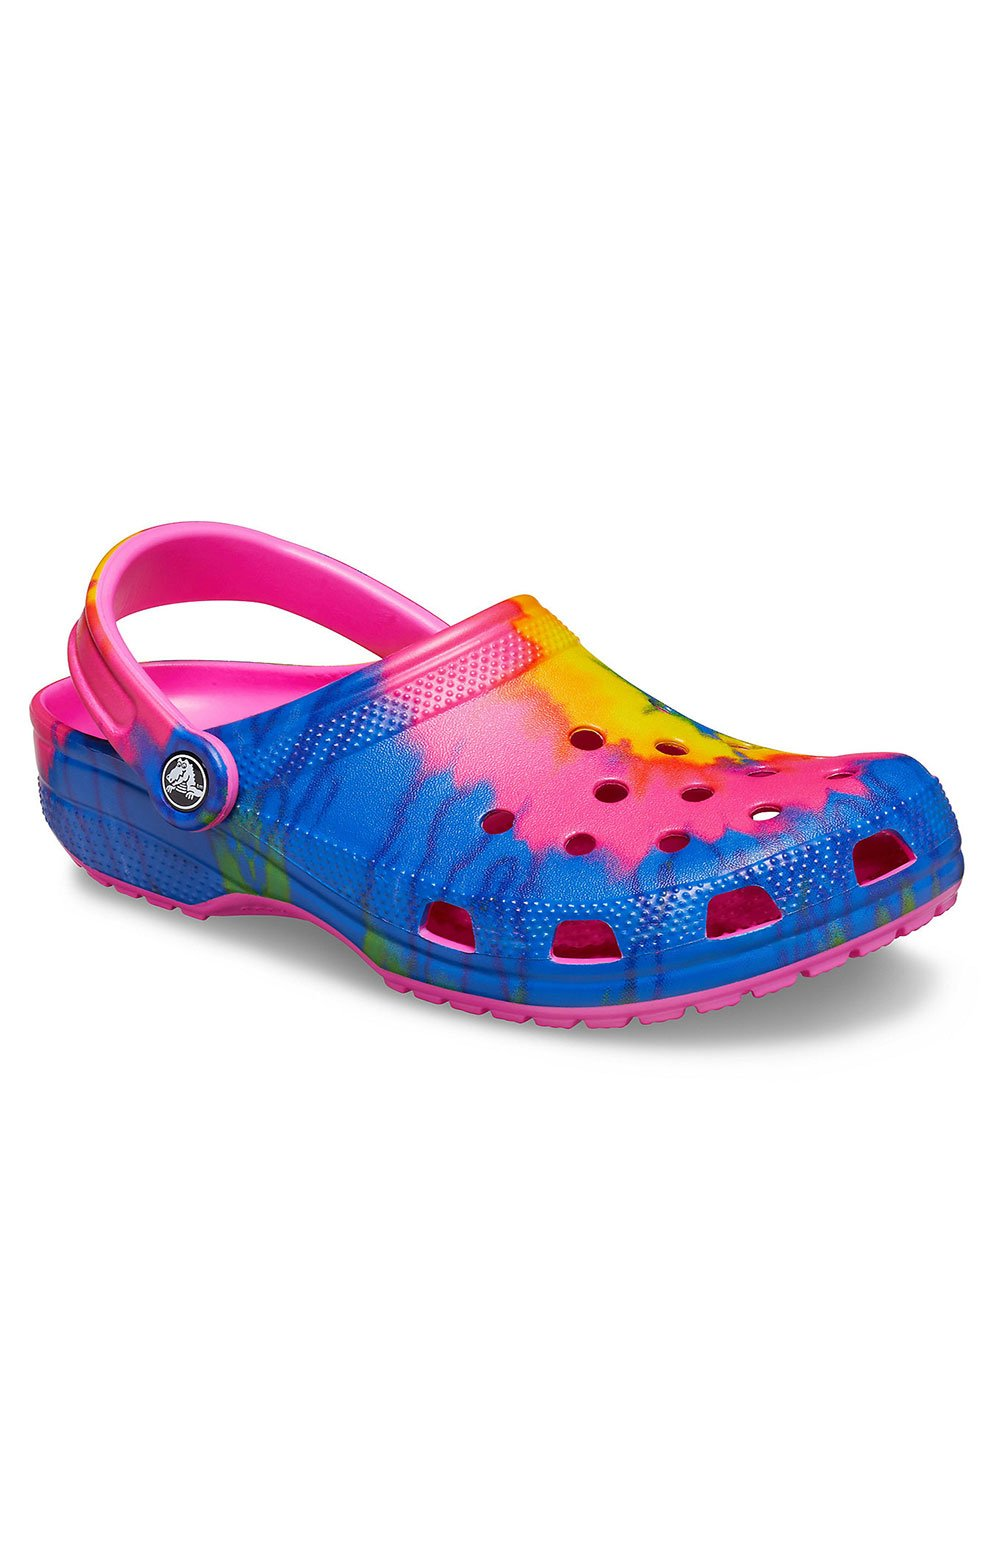 Crocs Classic Tie-Dye Graphic Clogs - Electric Pink/Multi